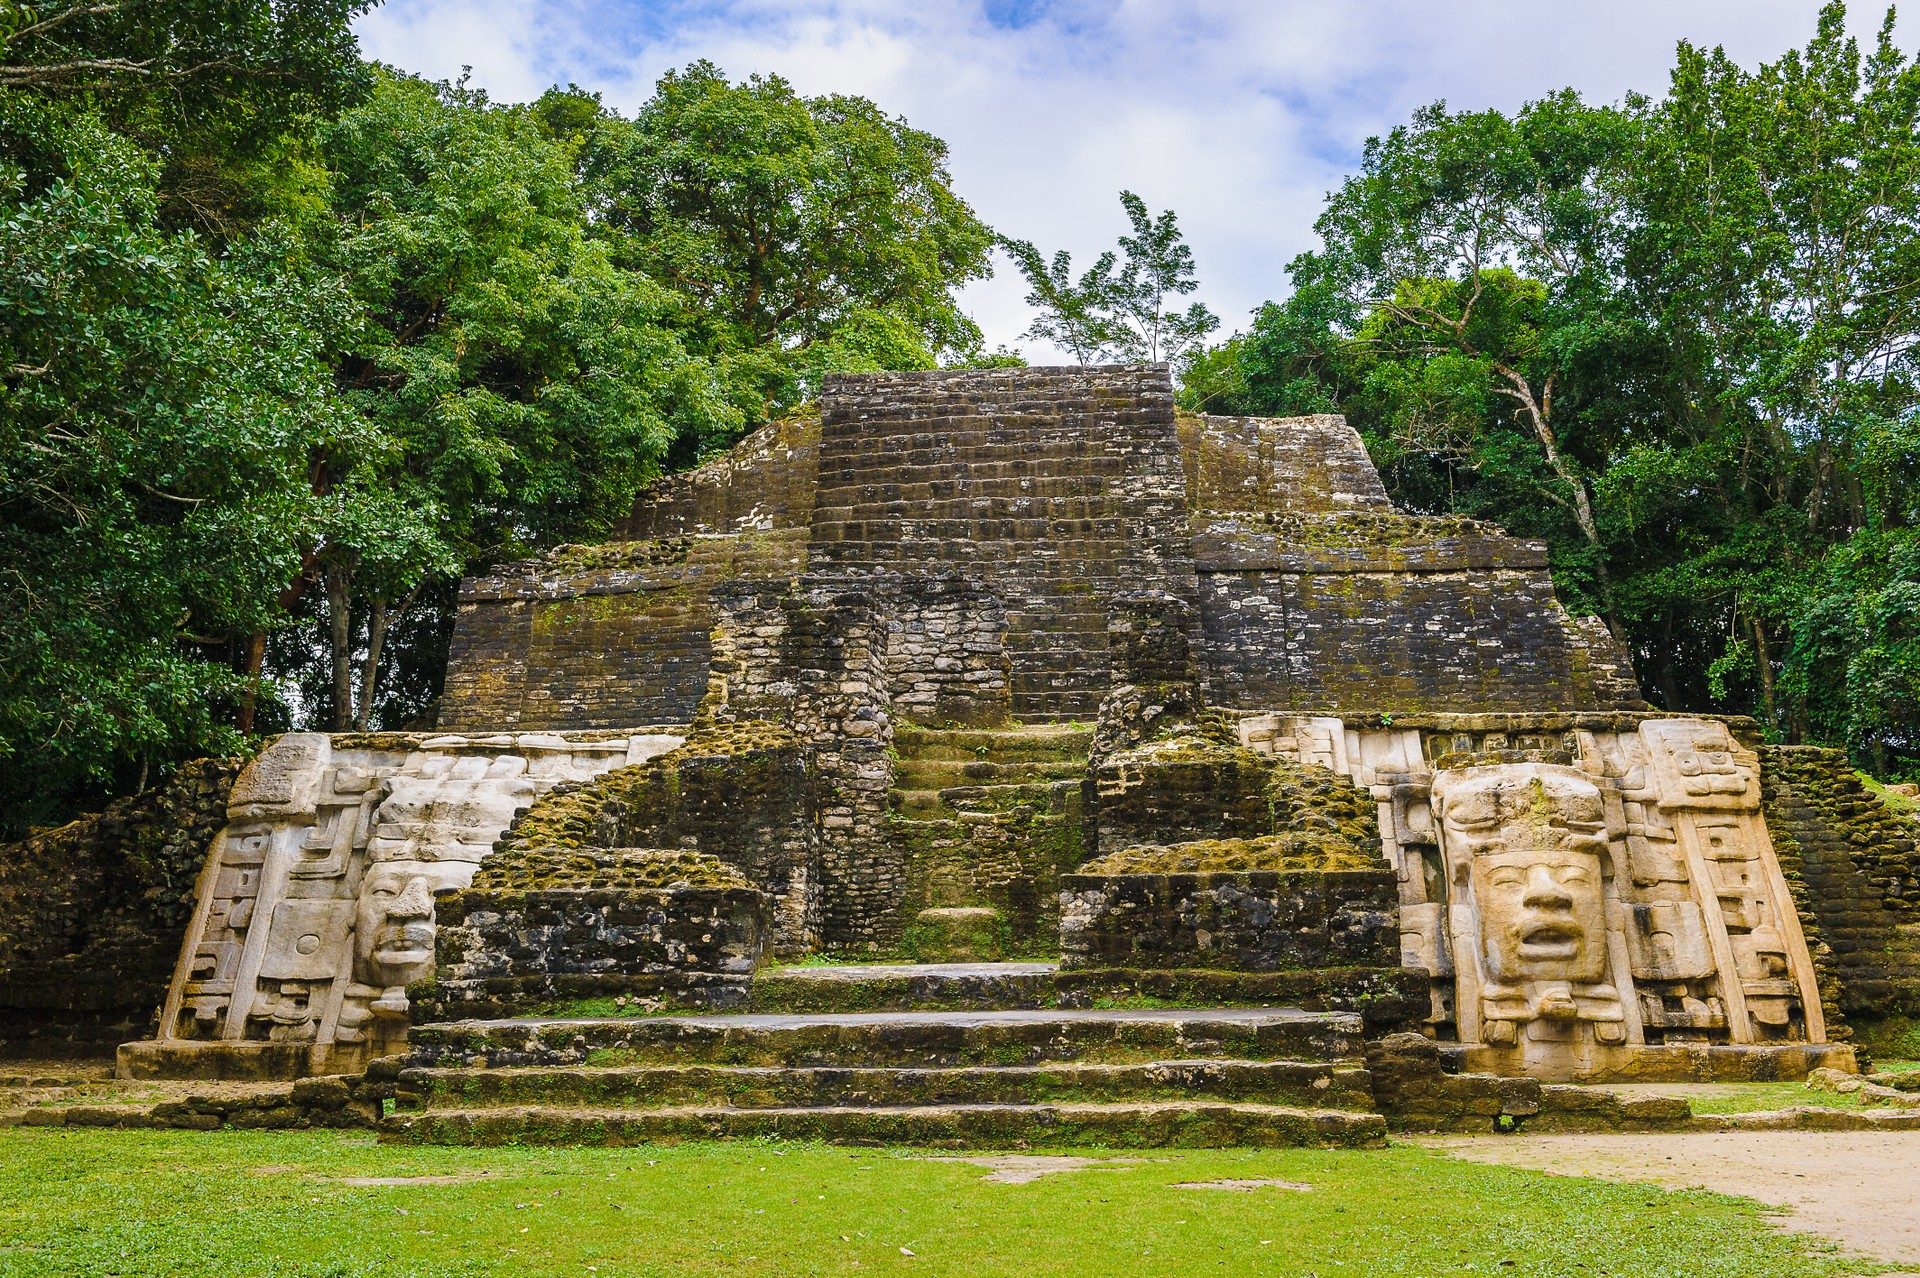 The ancient Maya site of Caracol in Belize